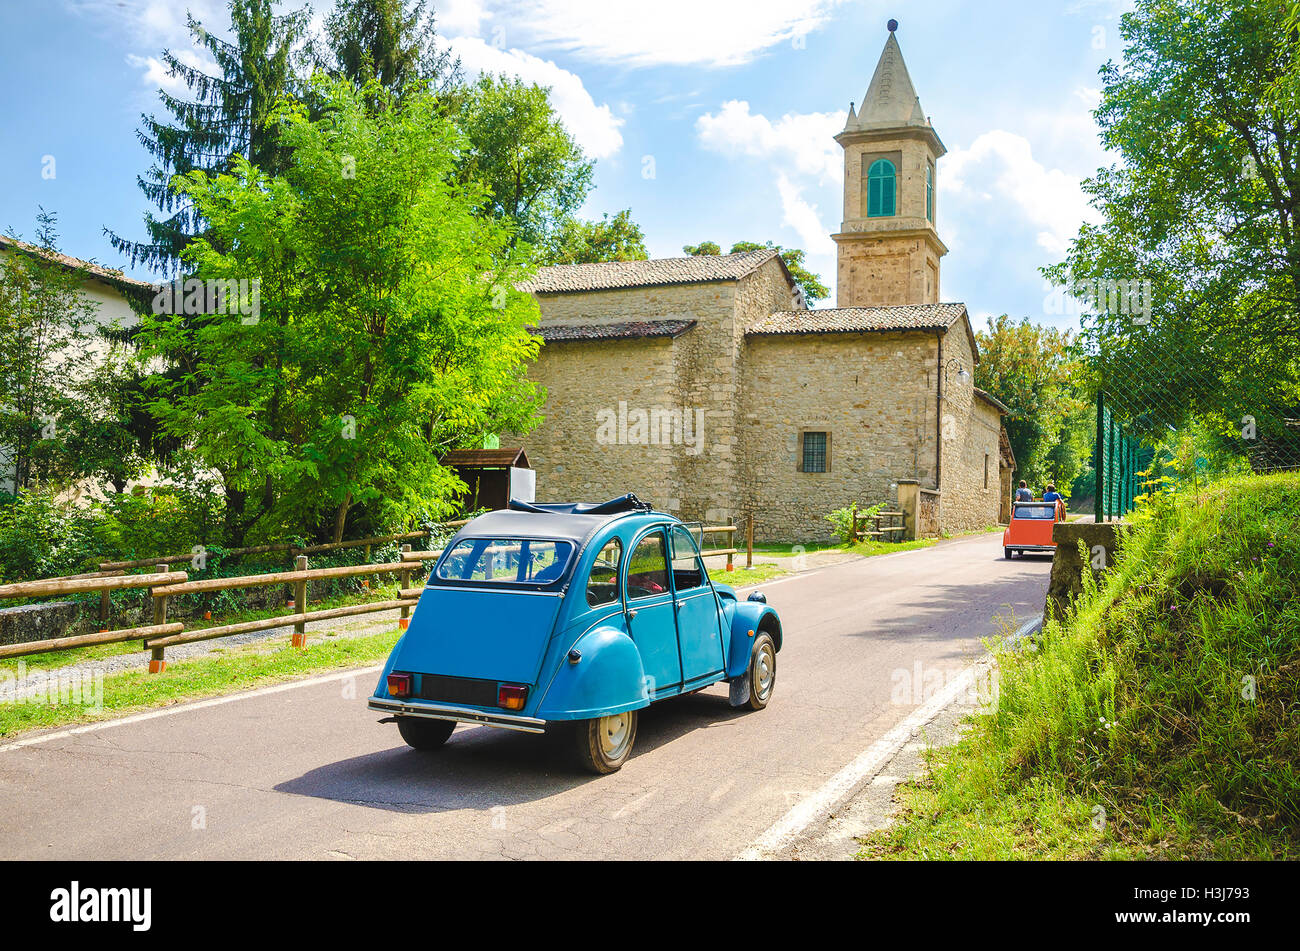 italy road trip vintage car travel countryside church - Stock Image